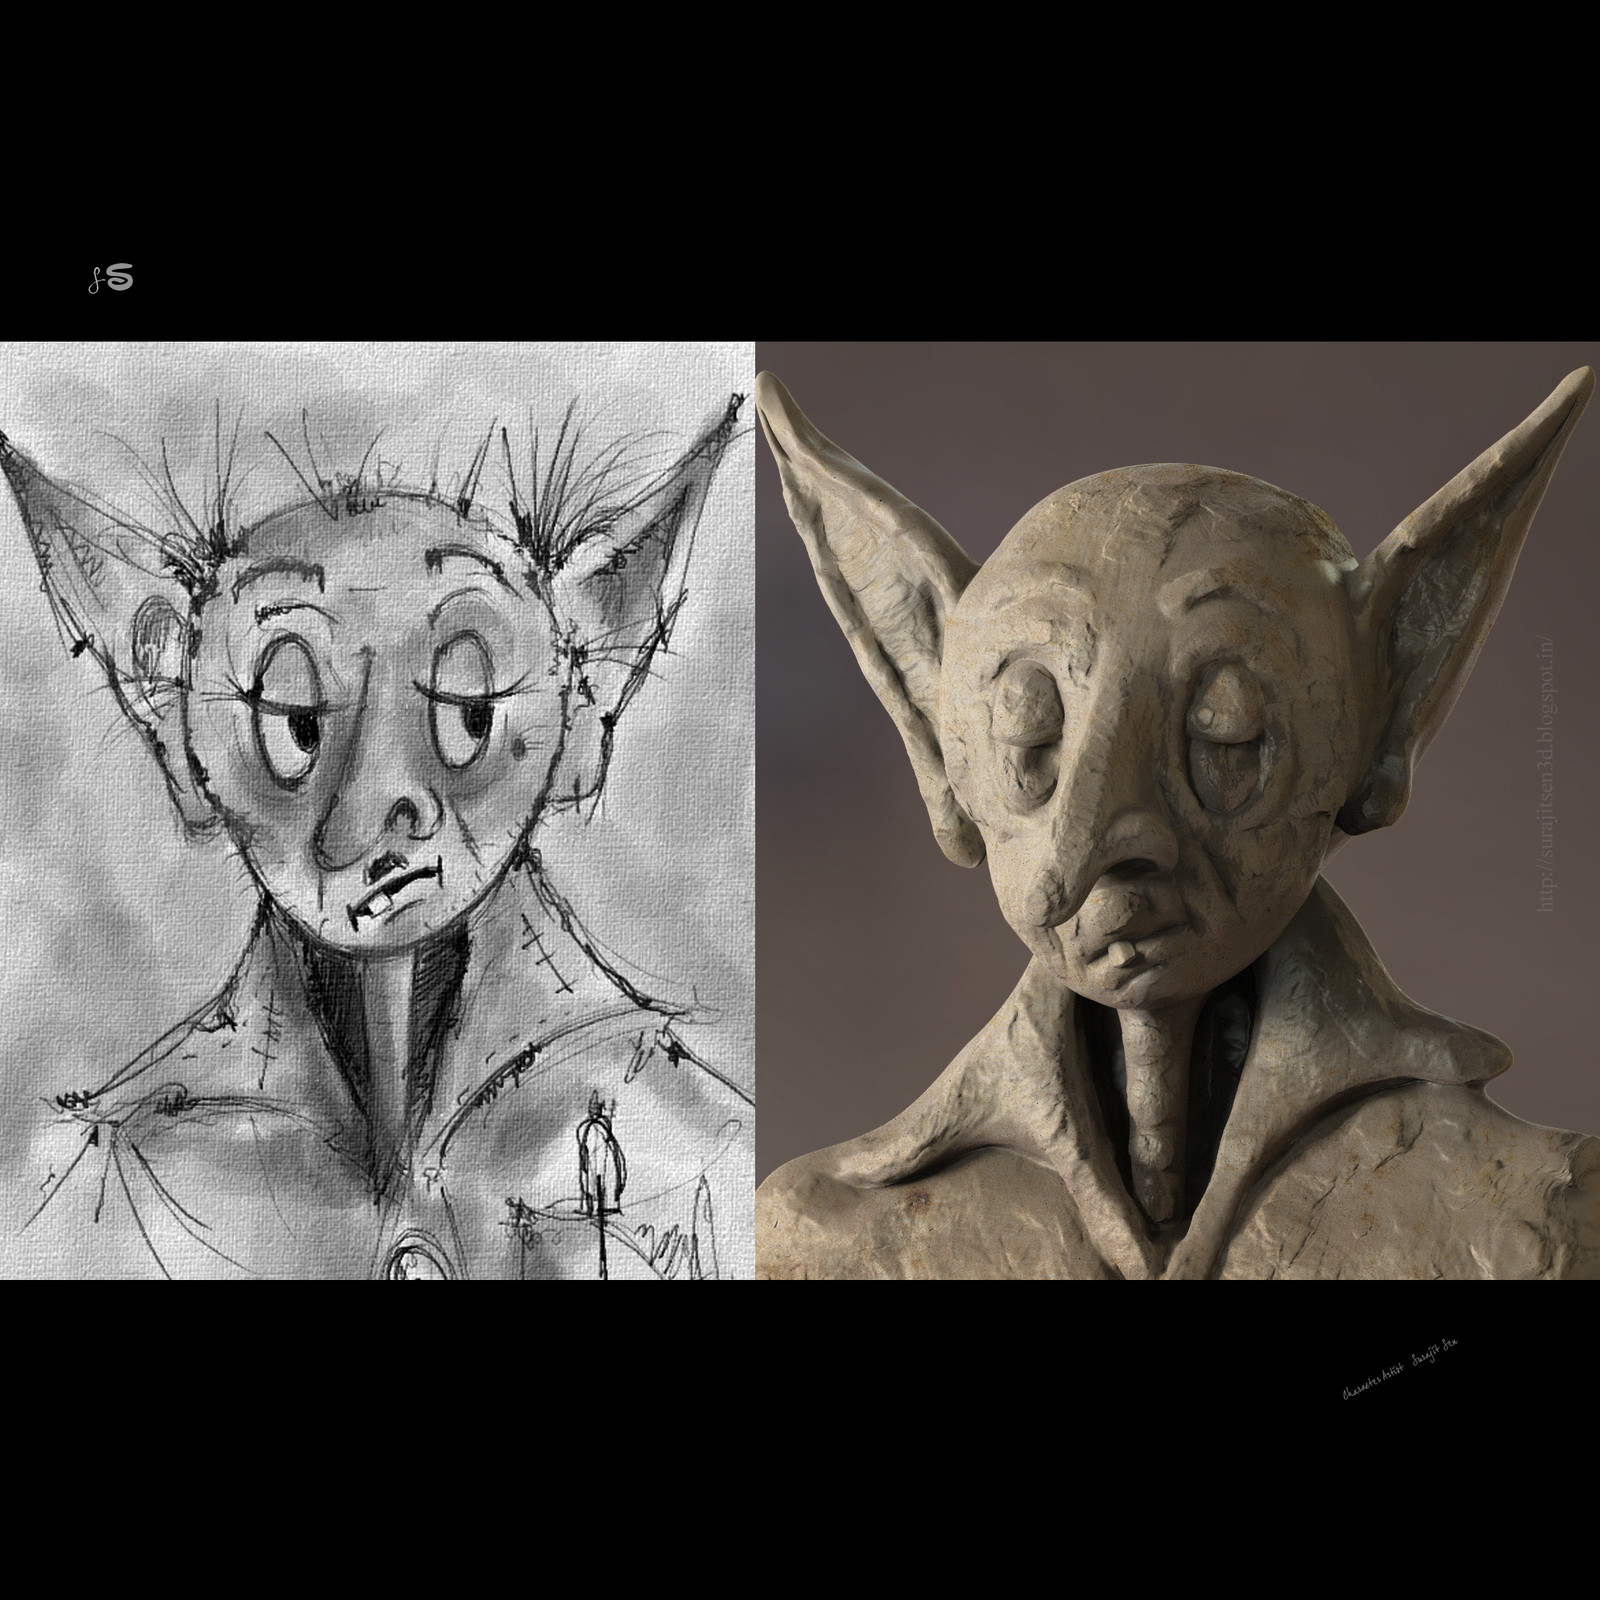 #Doodle Prof.Chintamoni. .....:) in basic sculpted form , is taken from my Rough sketch book...inspired by amazing visualizer #sukumarroy and one and only #satyajitroy .... just played with brushes...;)